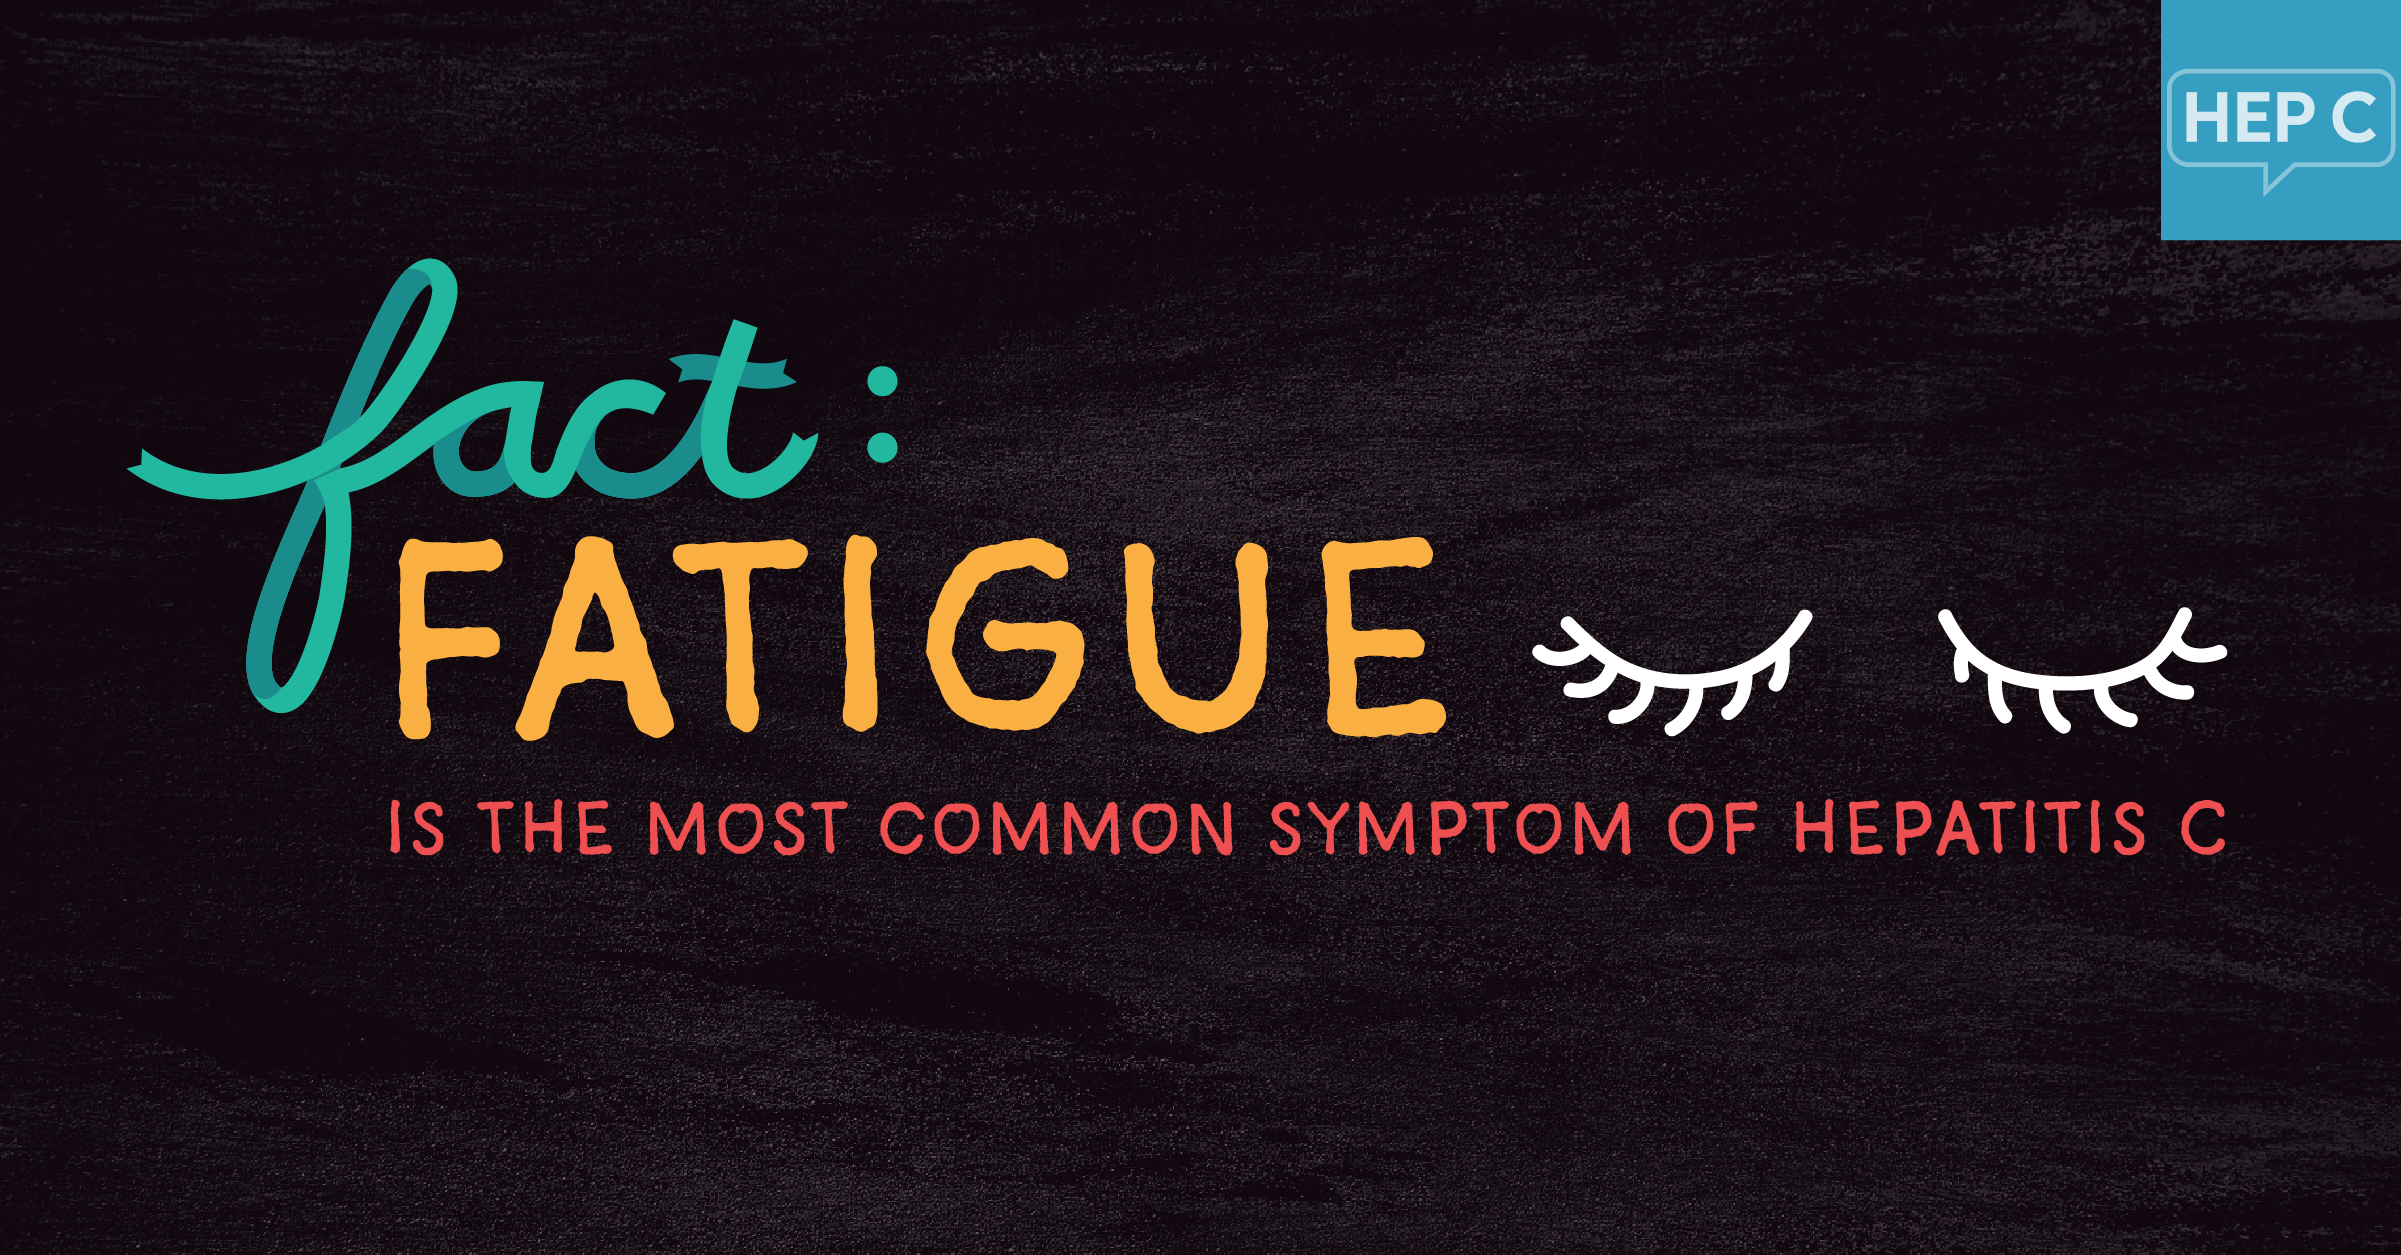 Fact: Fatigue is the most common symptom of hepatitis C